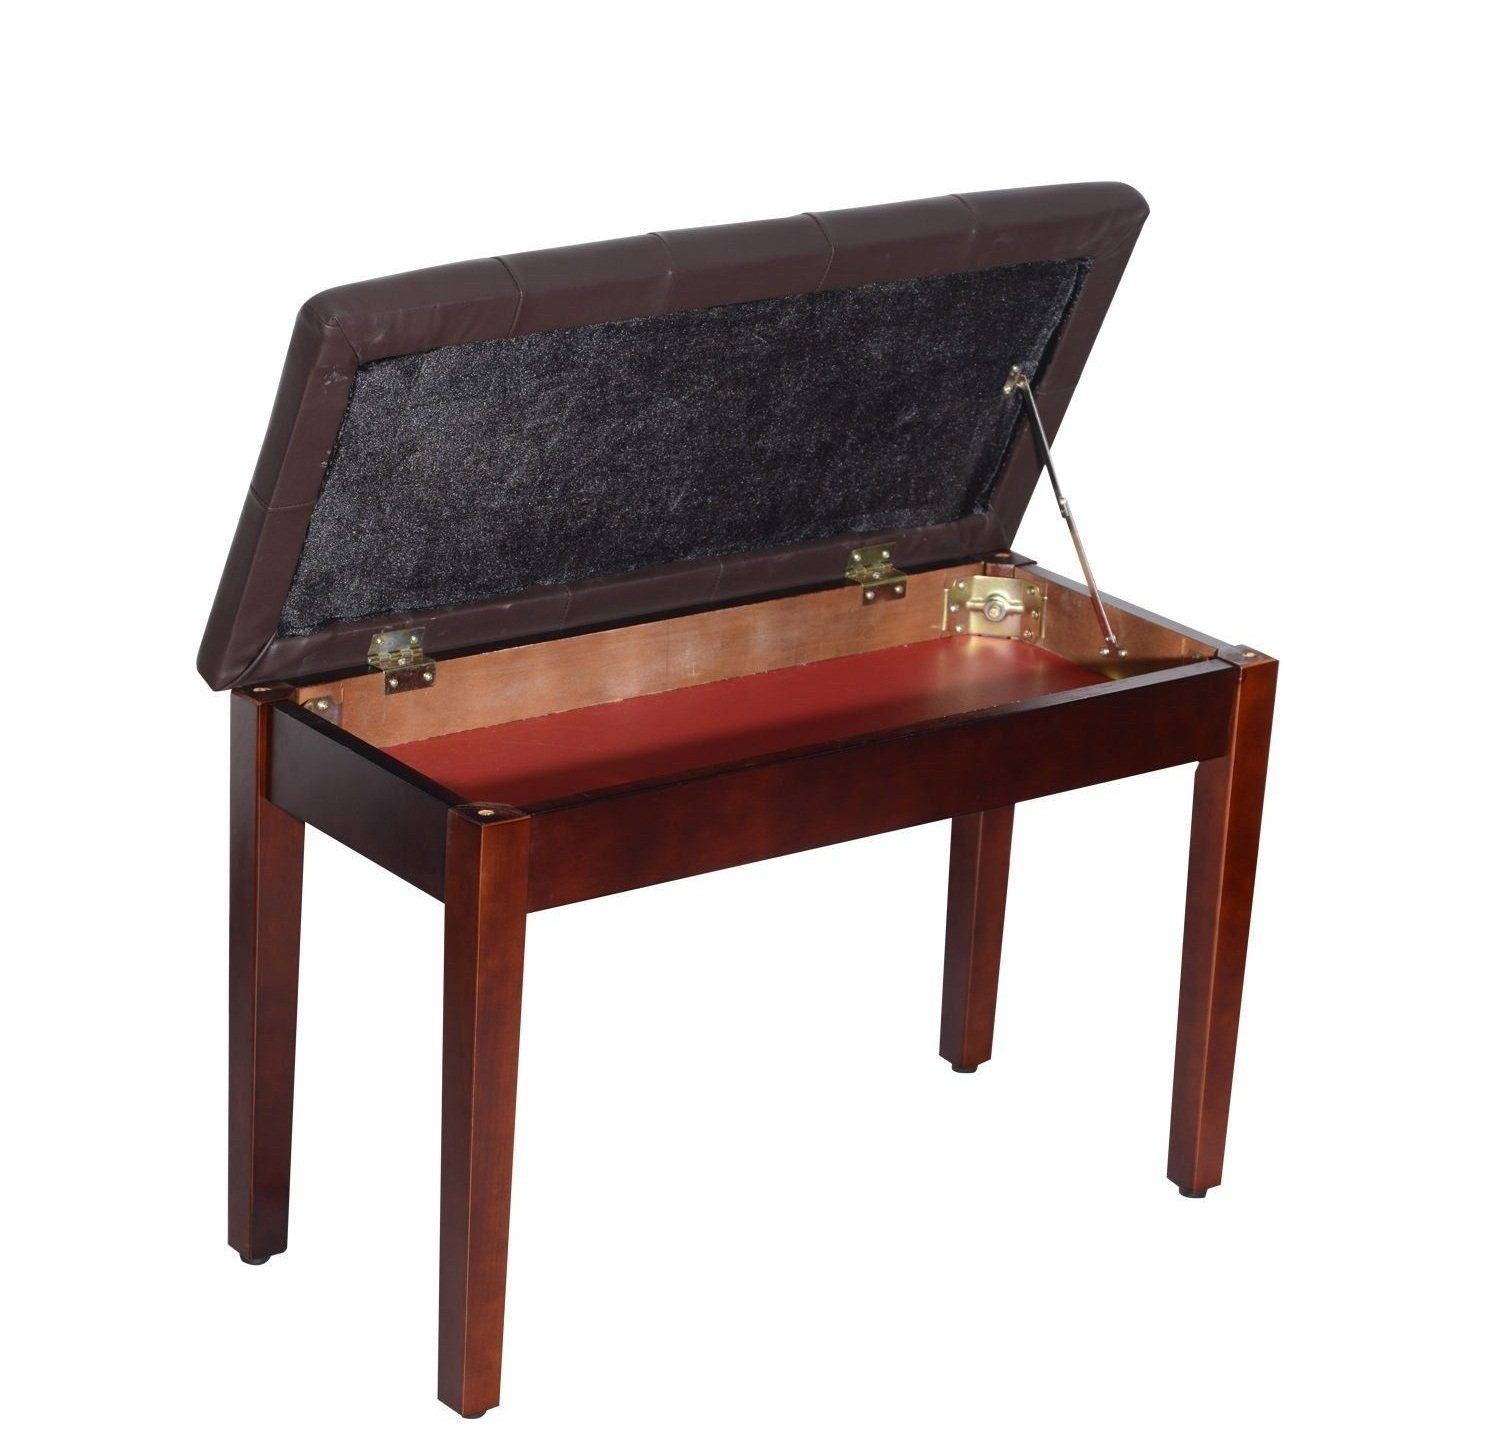 Faux Leather Piano Bench Wood Double Duet Keyboard Padded Storage Seat BW Eight24hours EH8541